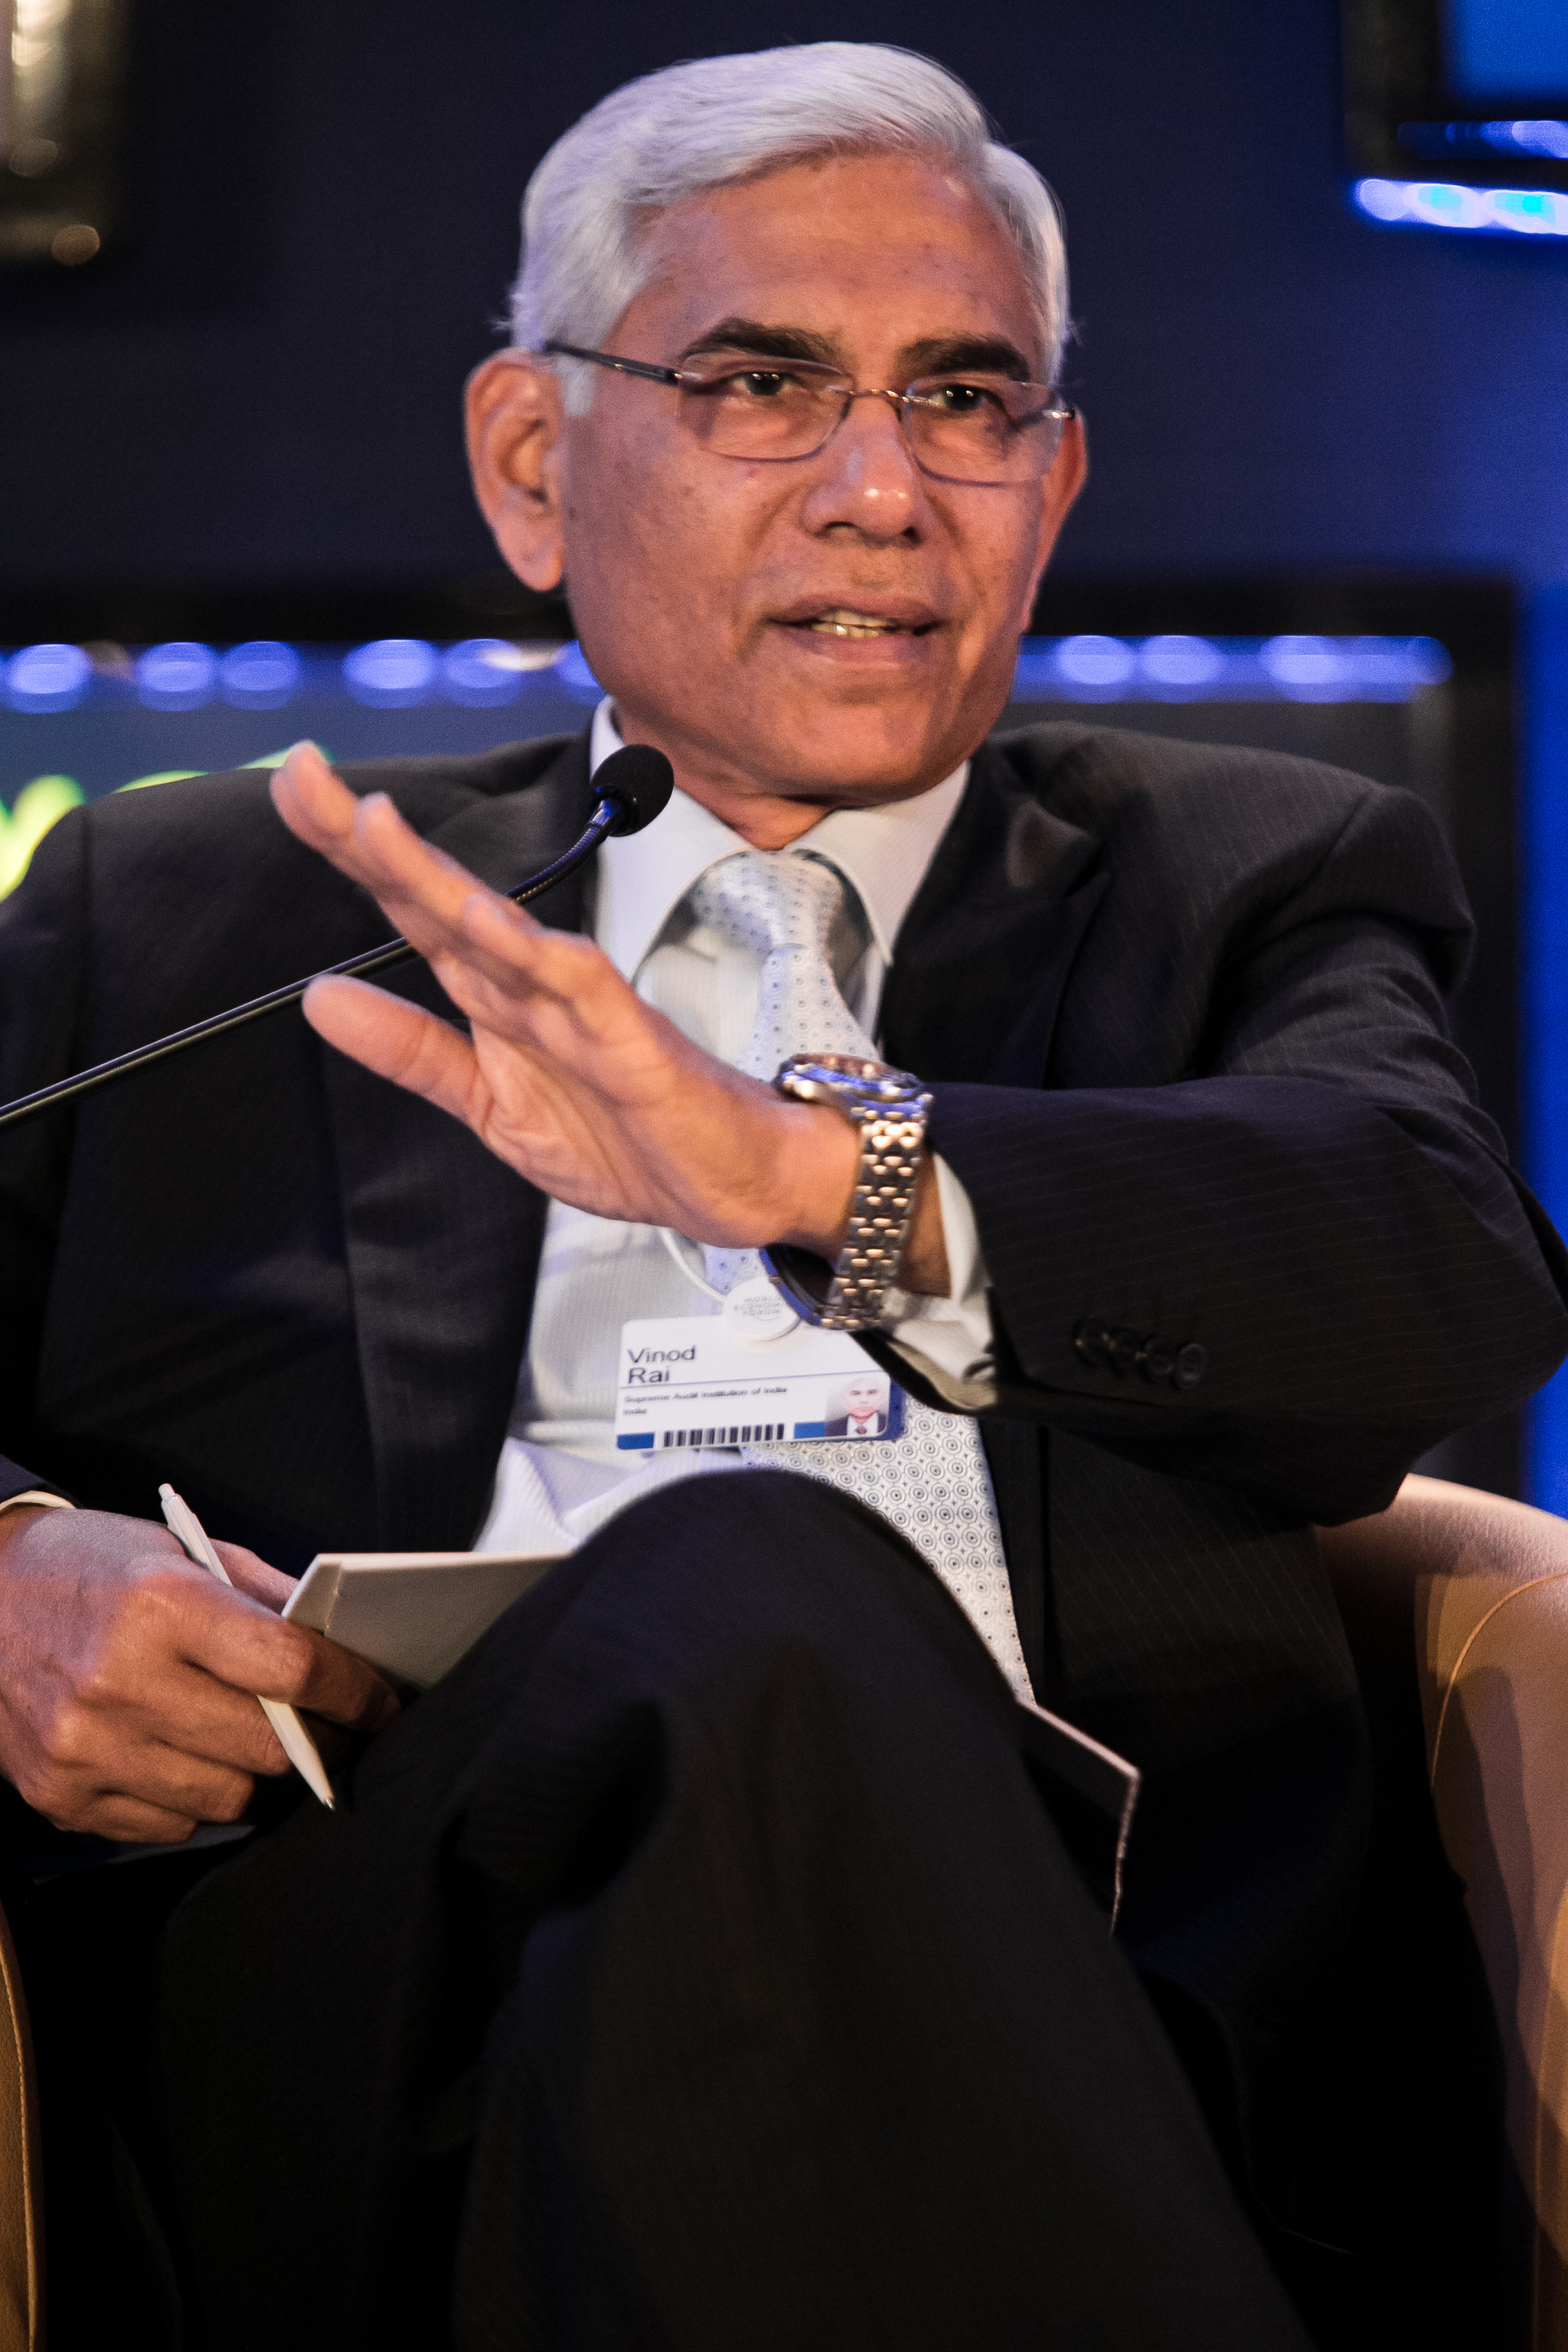 Vinod Rai, the head of the two-member Committee of Administrators appointed by the Supreme Court.